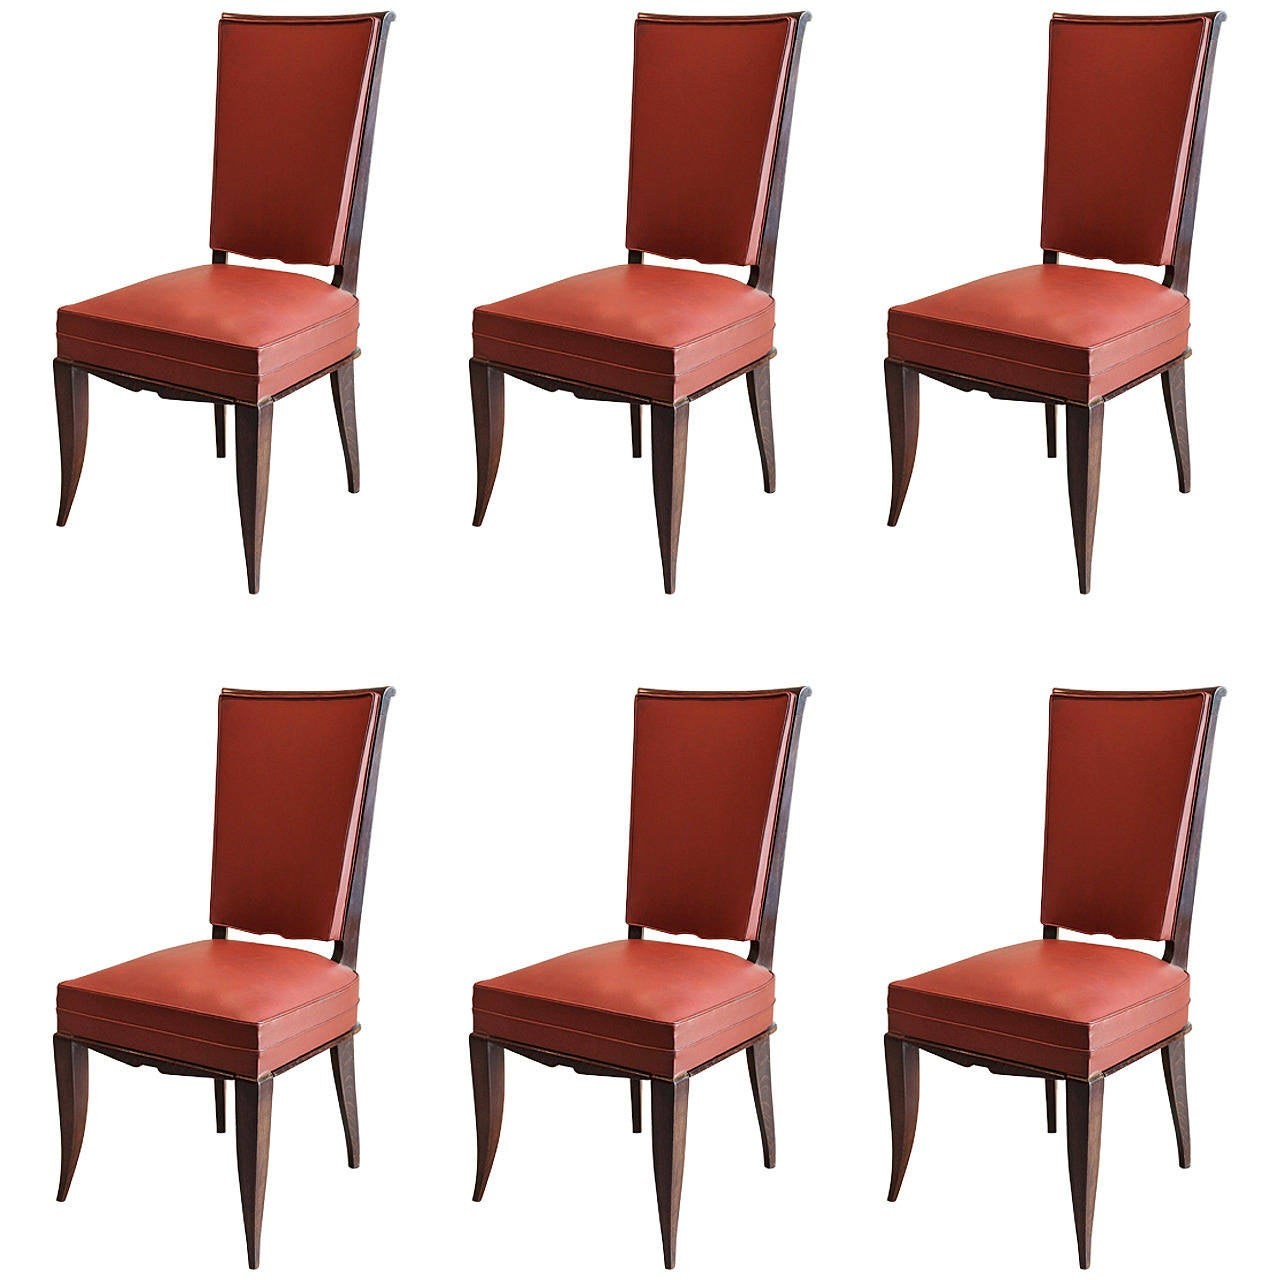 Artistic Dining Chairs Set Of Six Art Deco Dining Chairs For Sale At 1stdibs